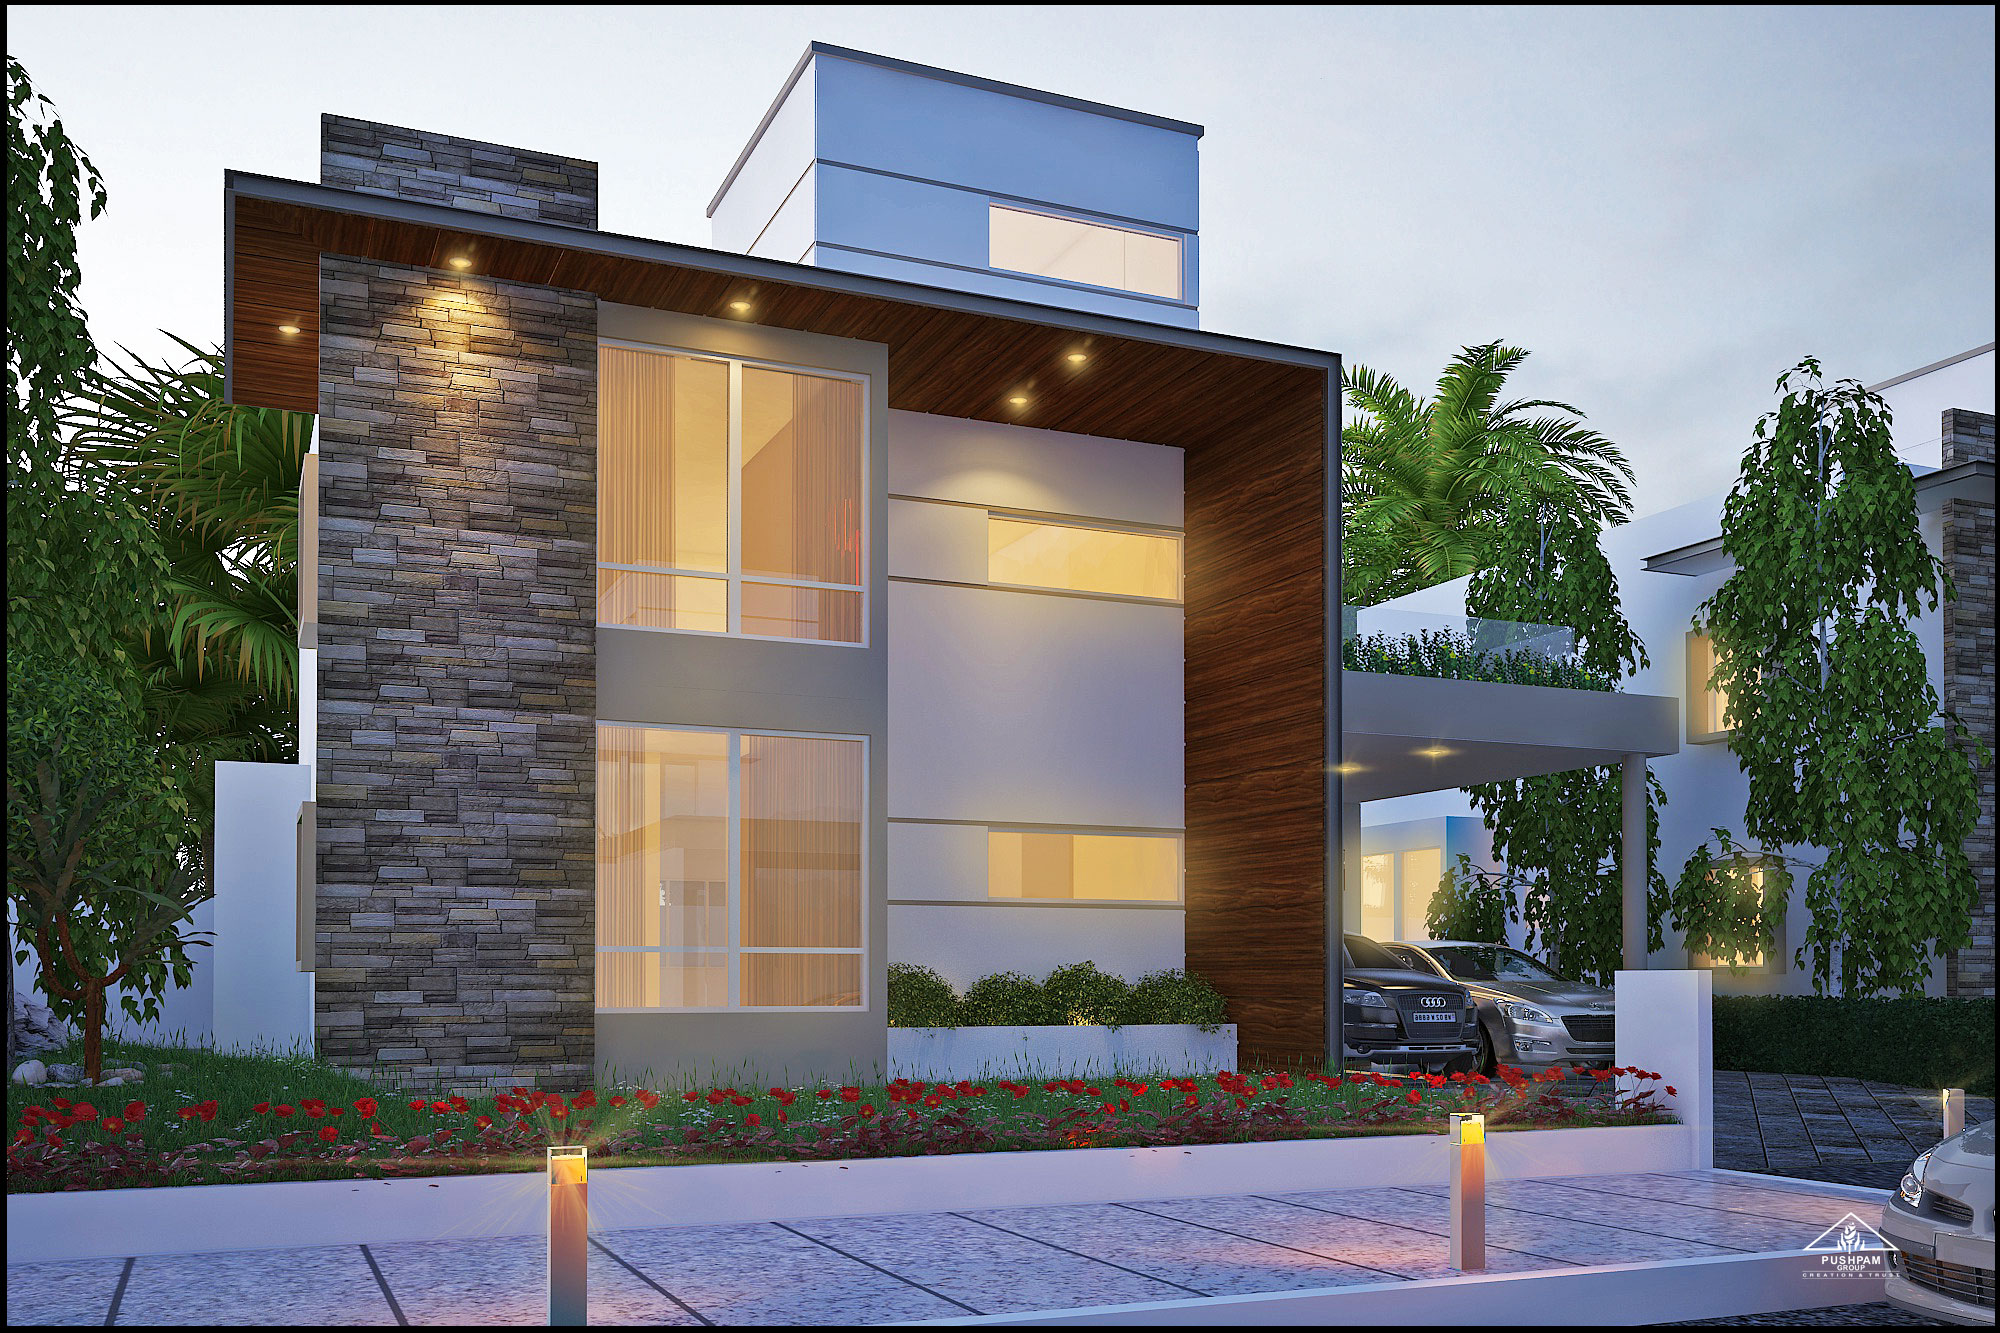 Viilas for sale in Attibele-Thally road  DTCP Approved villas for sale in Attibele- Thally road with all huge amenities & 5 star  Radisson Resort  club membership.  Just half an hour drive from Electronics City and adjacent to TAAL airport on Attibele to Thalli Road,